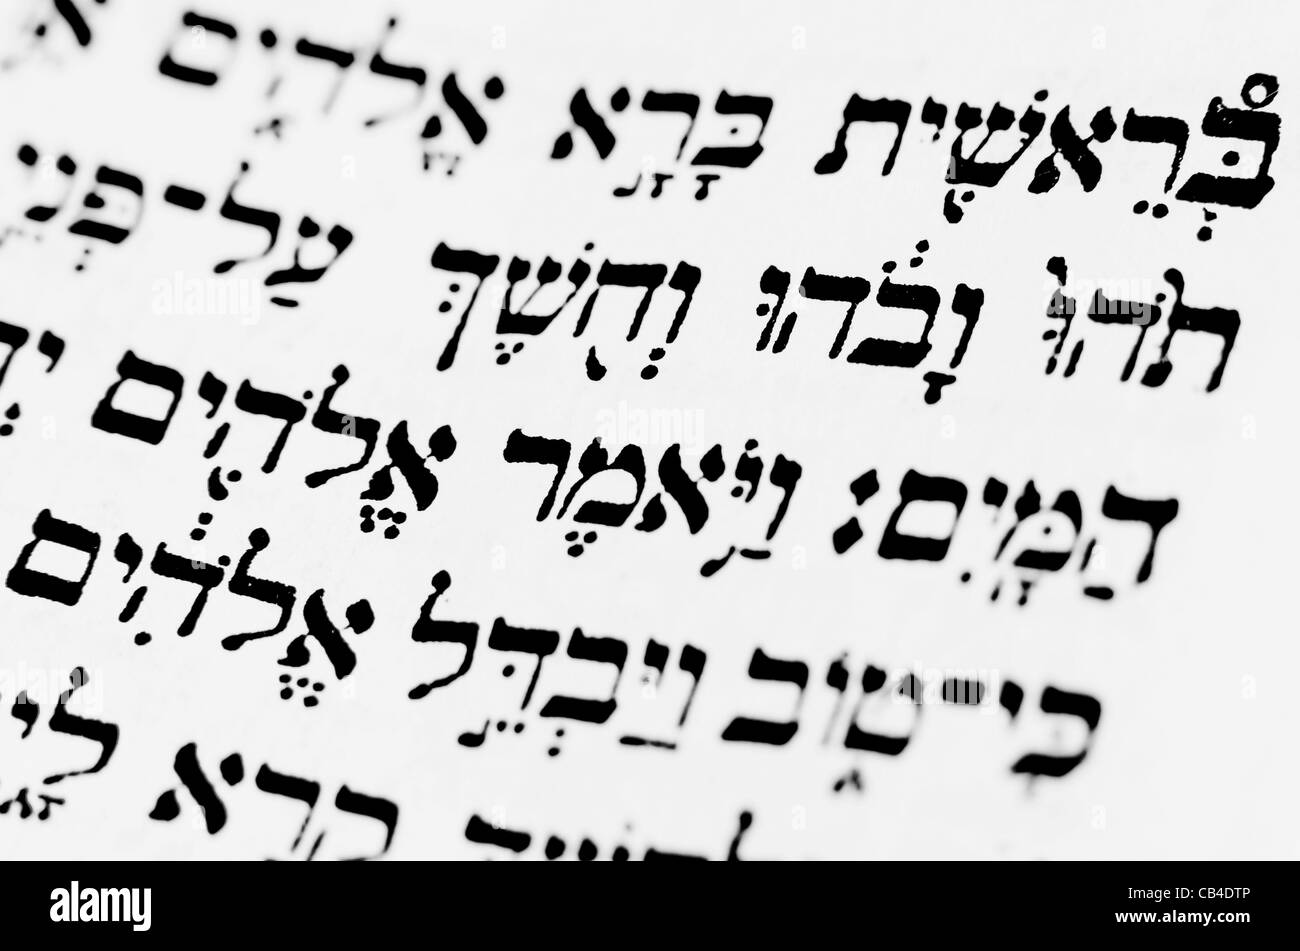 The first page of Genesis in the Hebrew bible - Stock Image